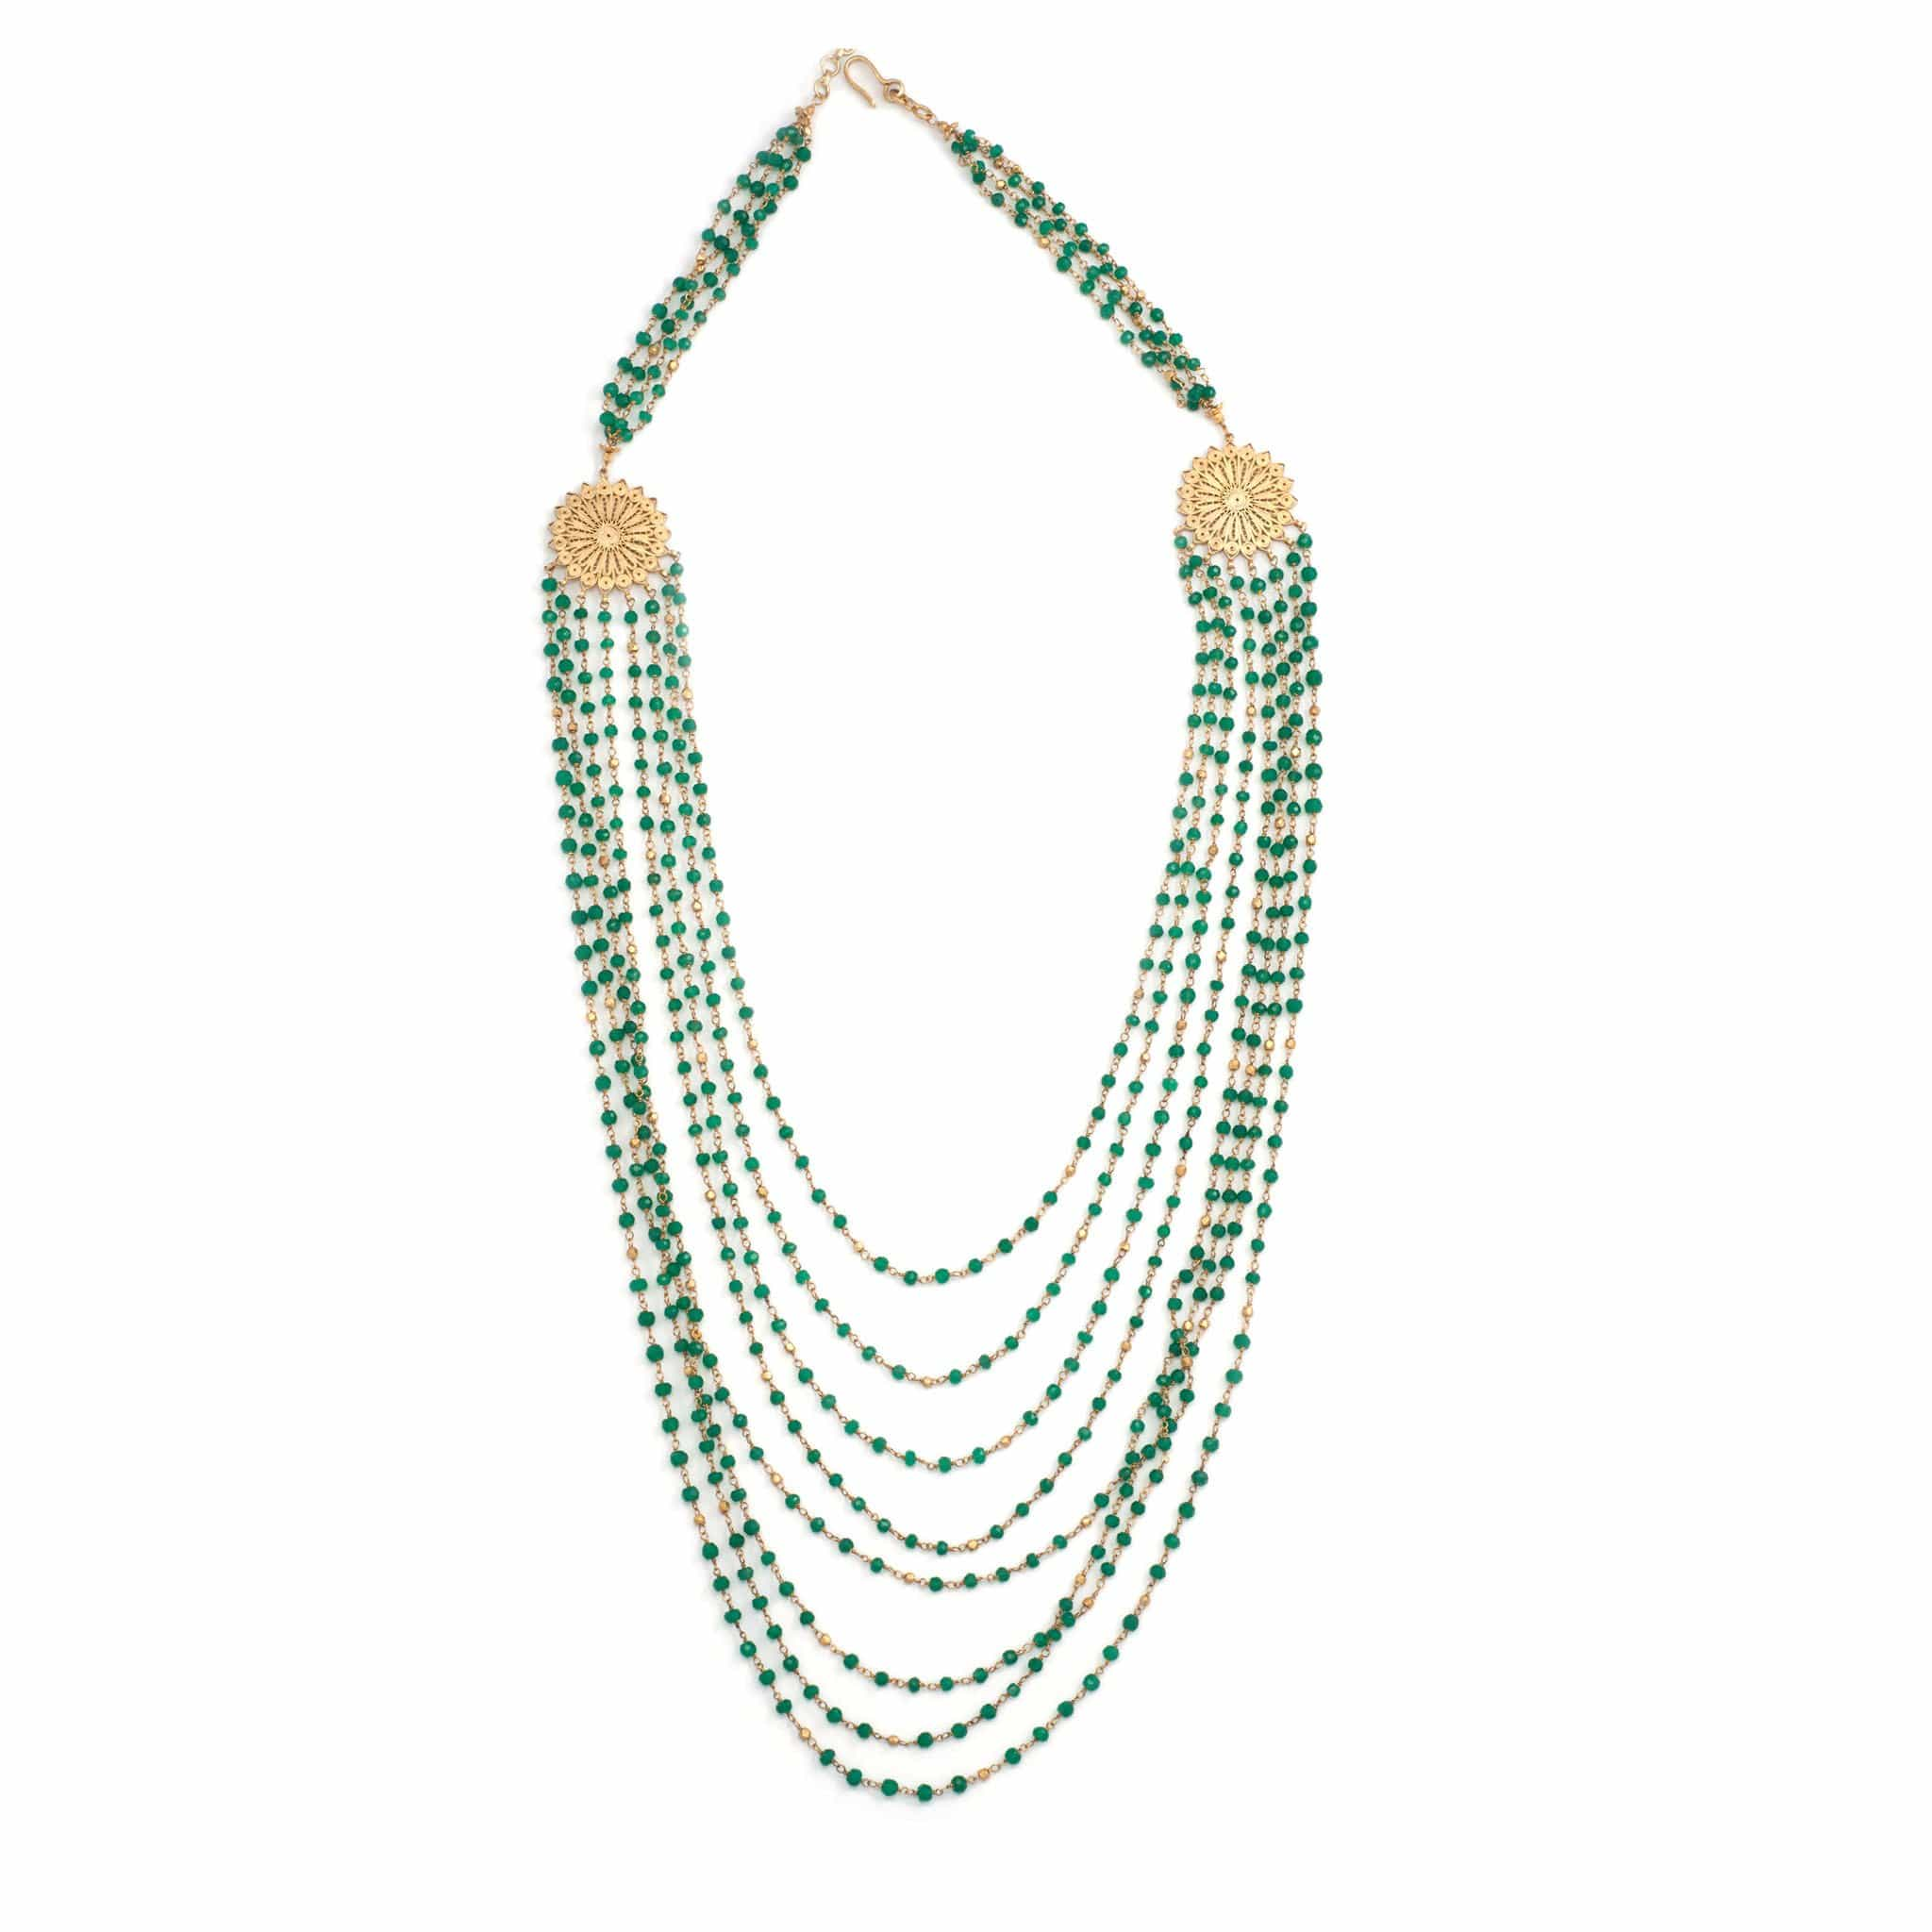 Green Chalcedony Filigree Statement Necklace - Curated Los Angeles